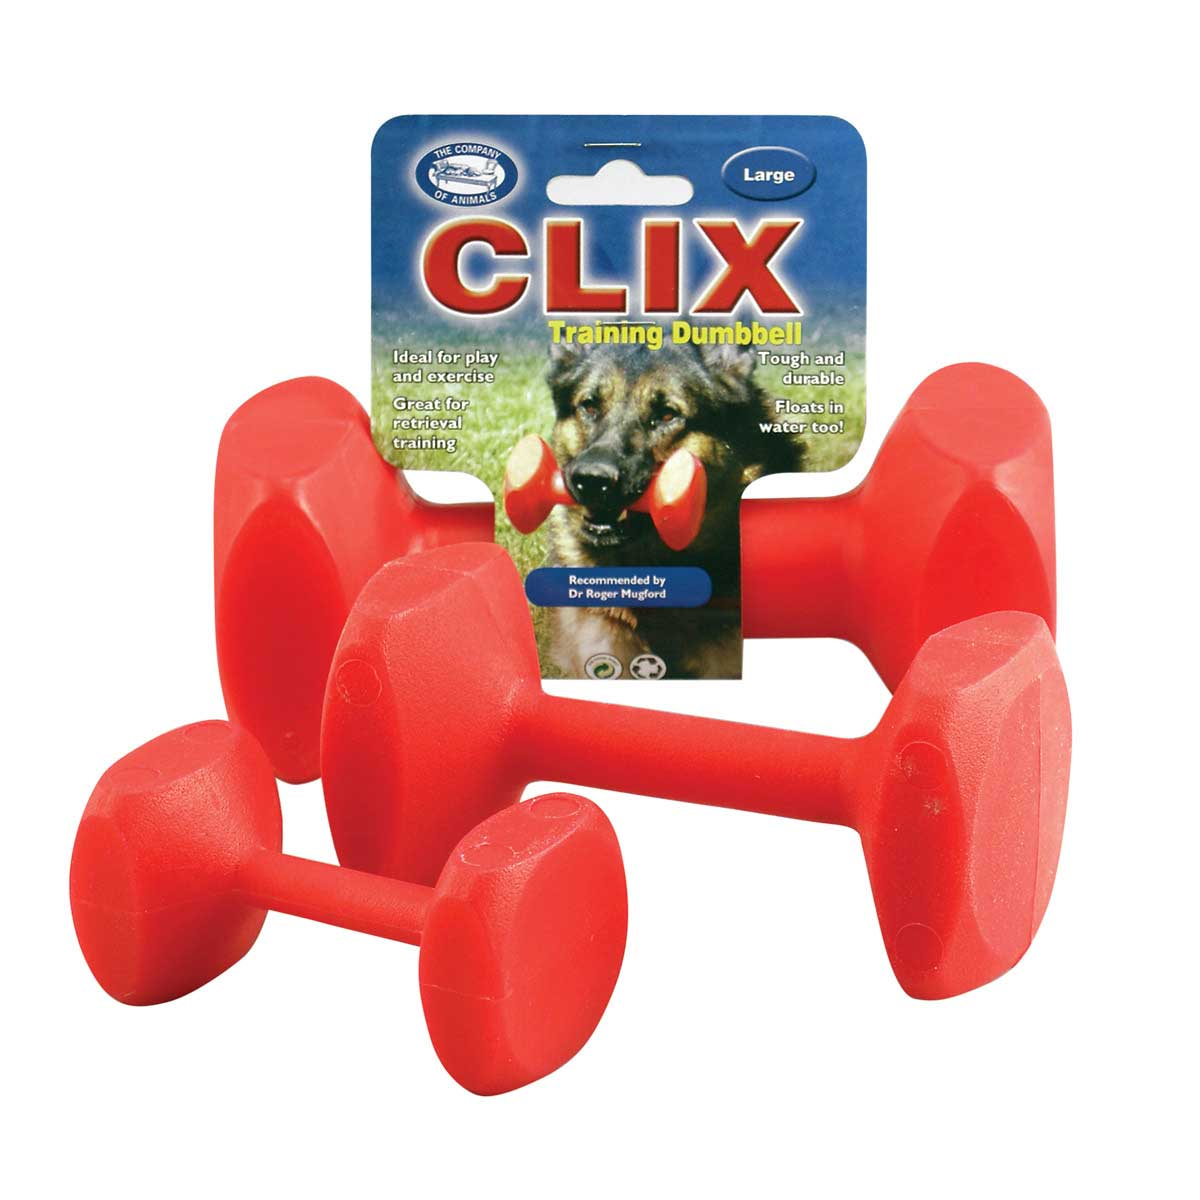 Clix Dumbbell for Dog Training - Large